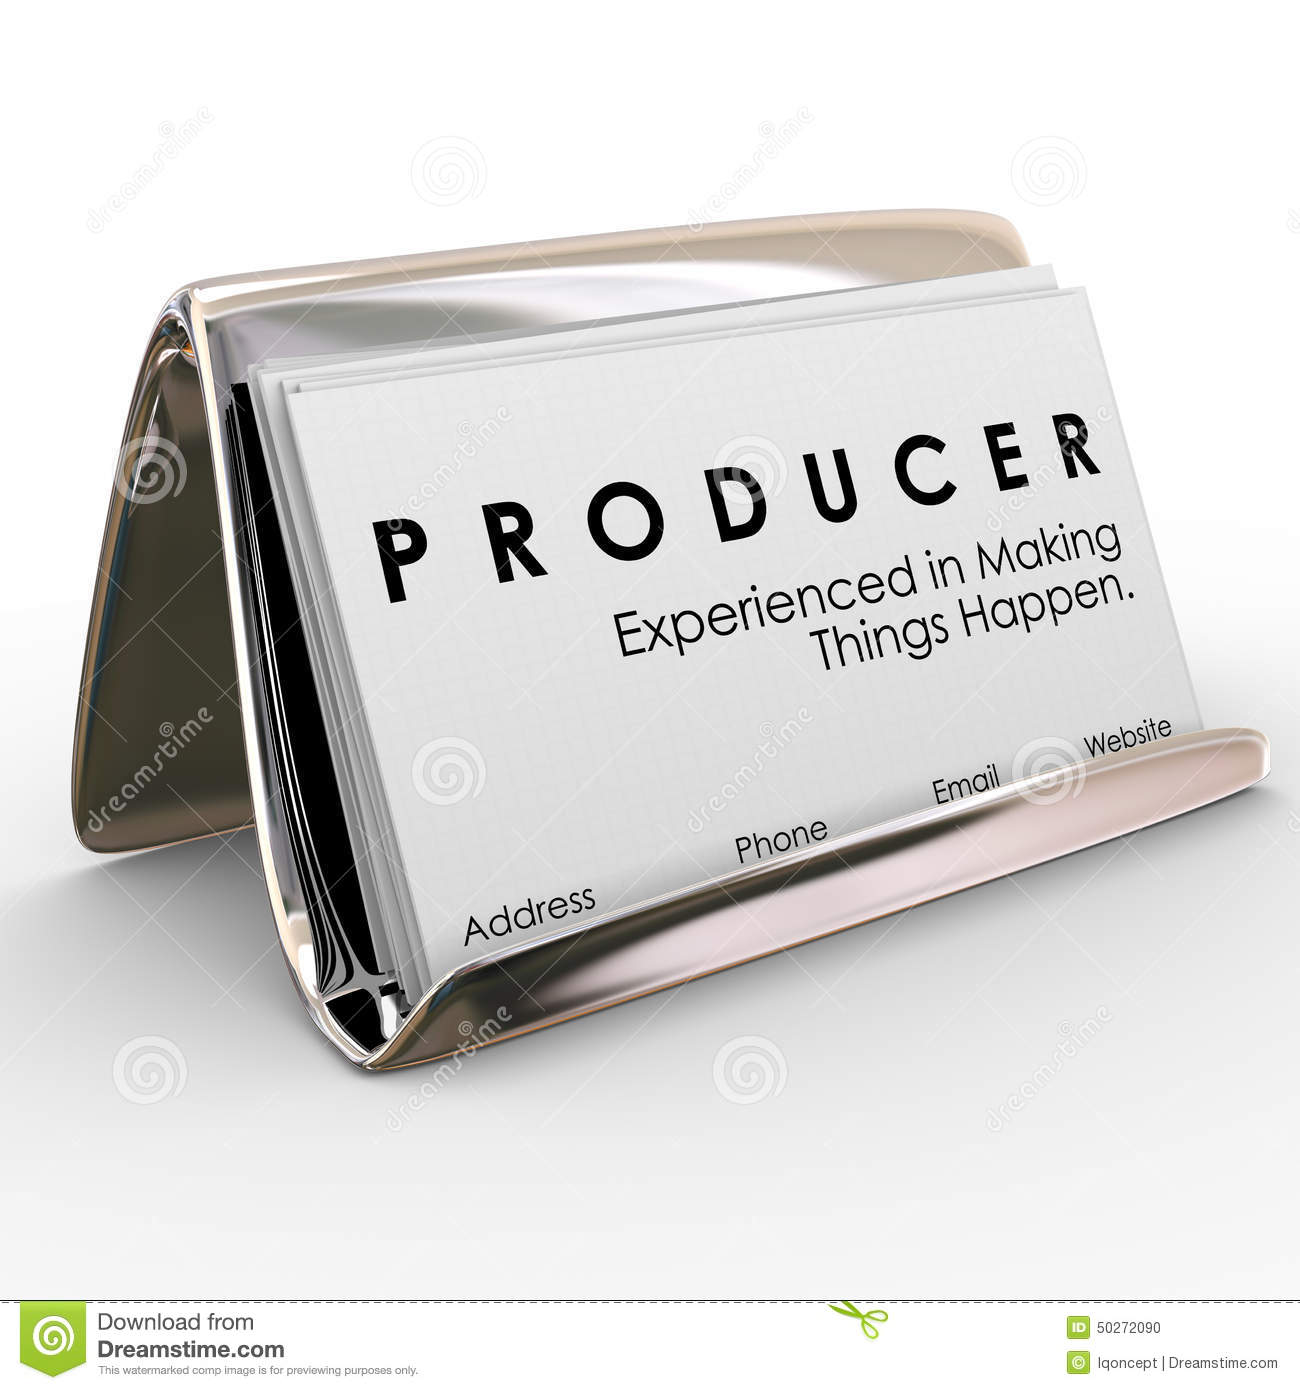 Producer Business Cards Experienced Making Things Happen Stock ...